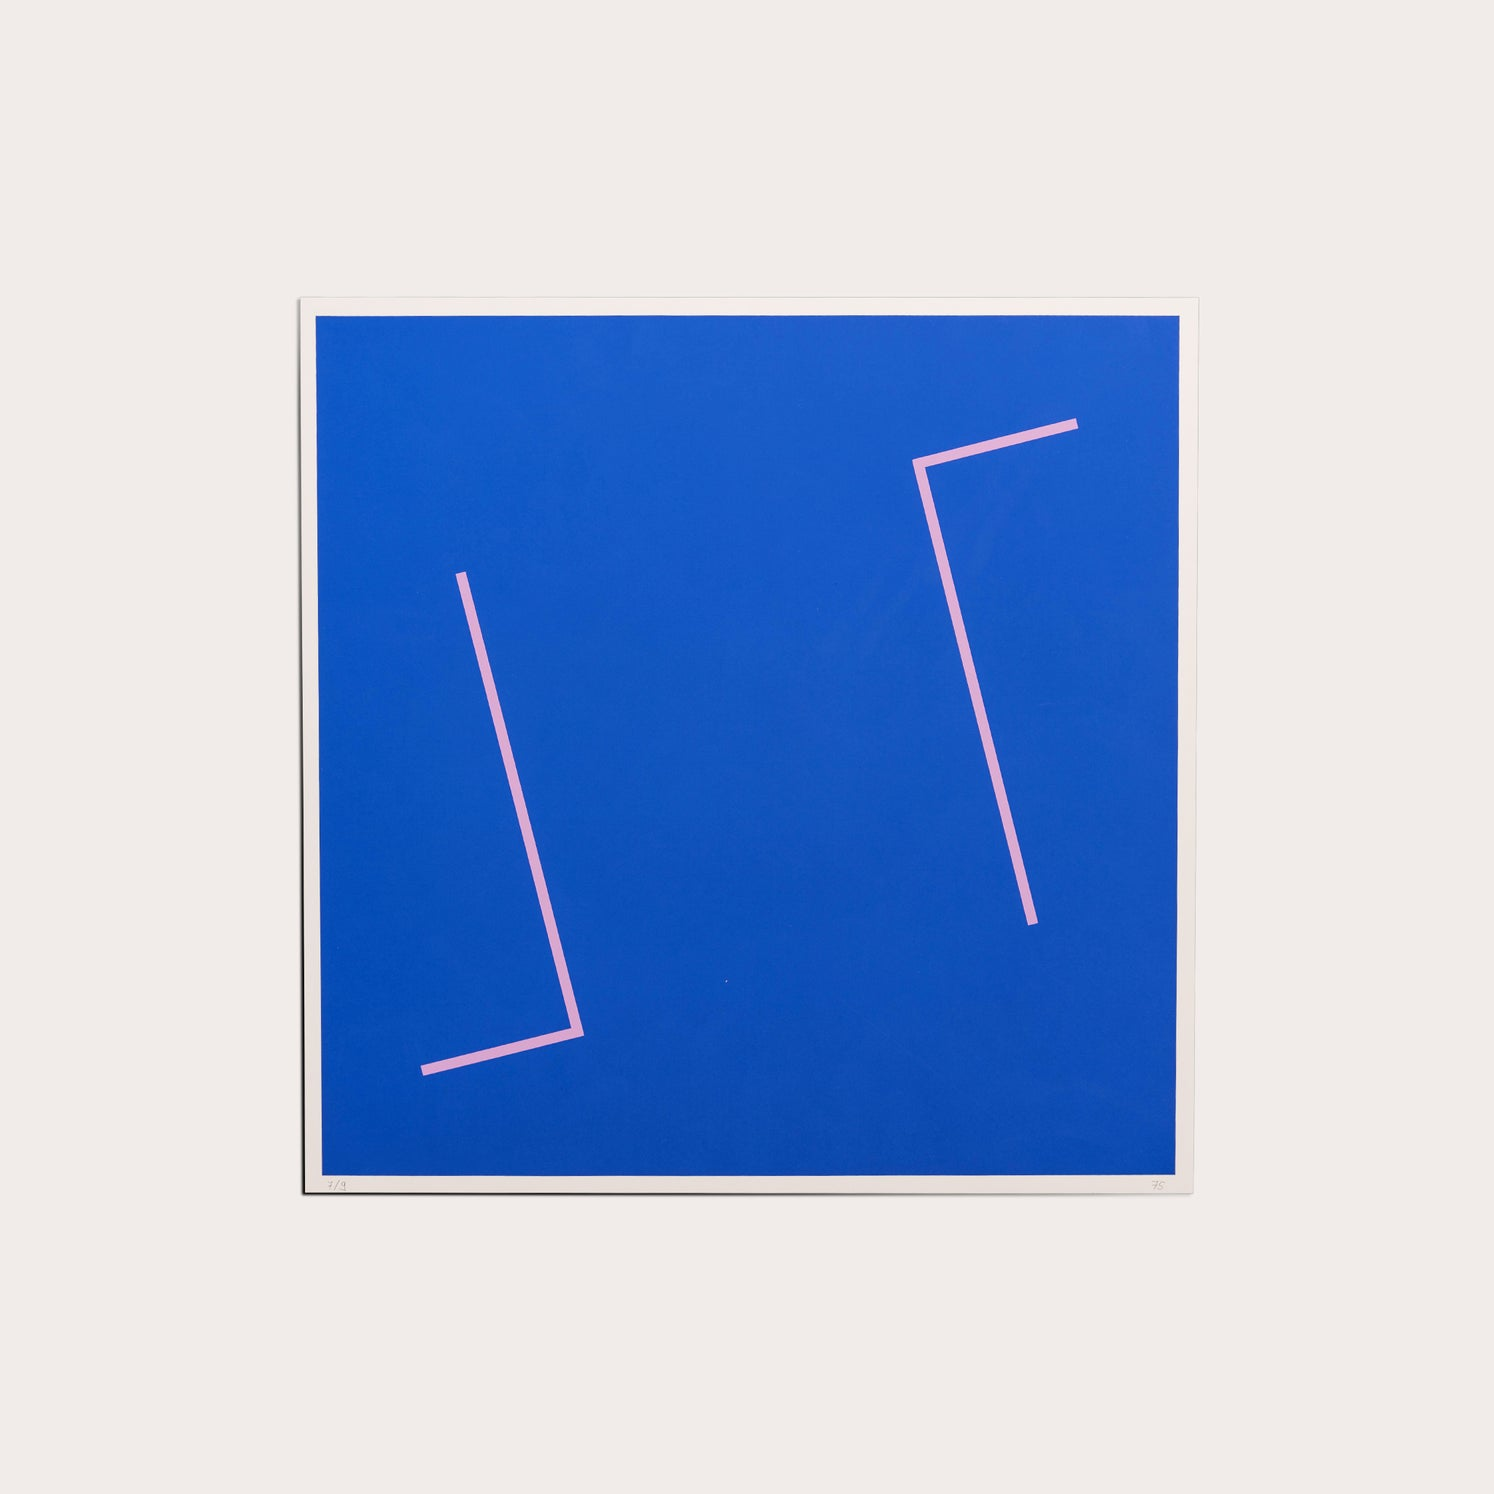 Untitled  (Blue), 1975 Prints Maximilian Weishaupt Designer Furniture Sku: 040-270-10008